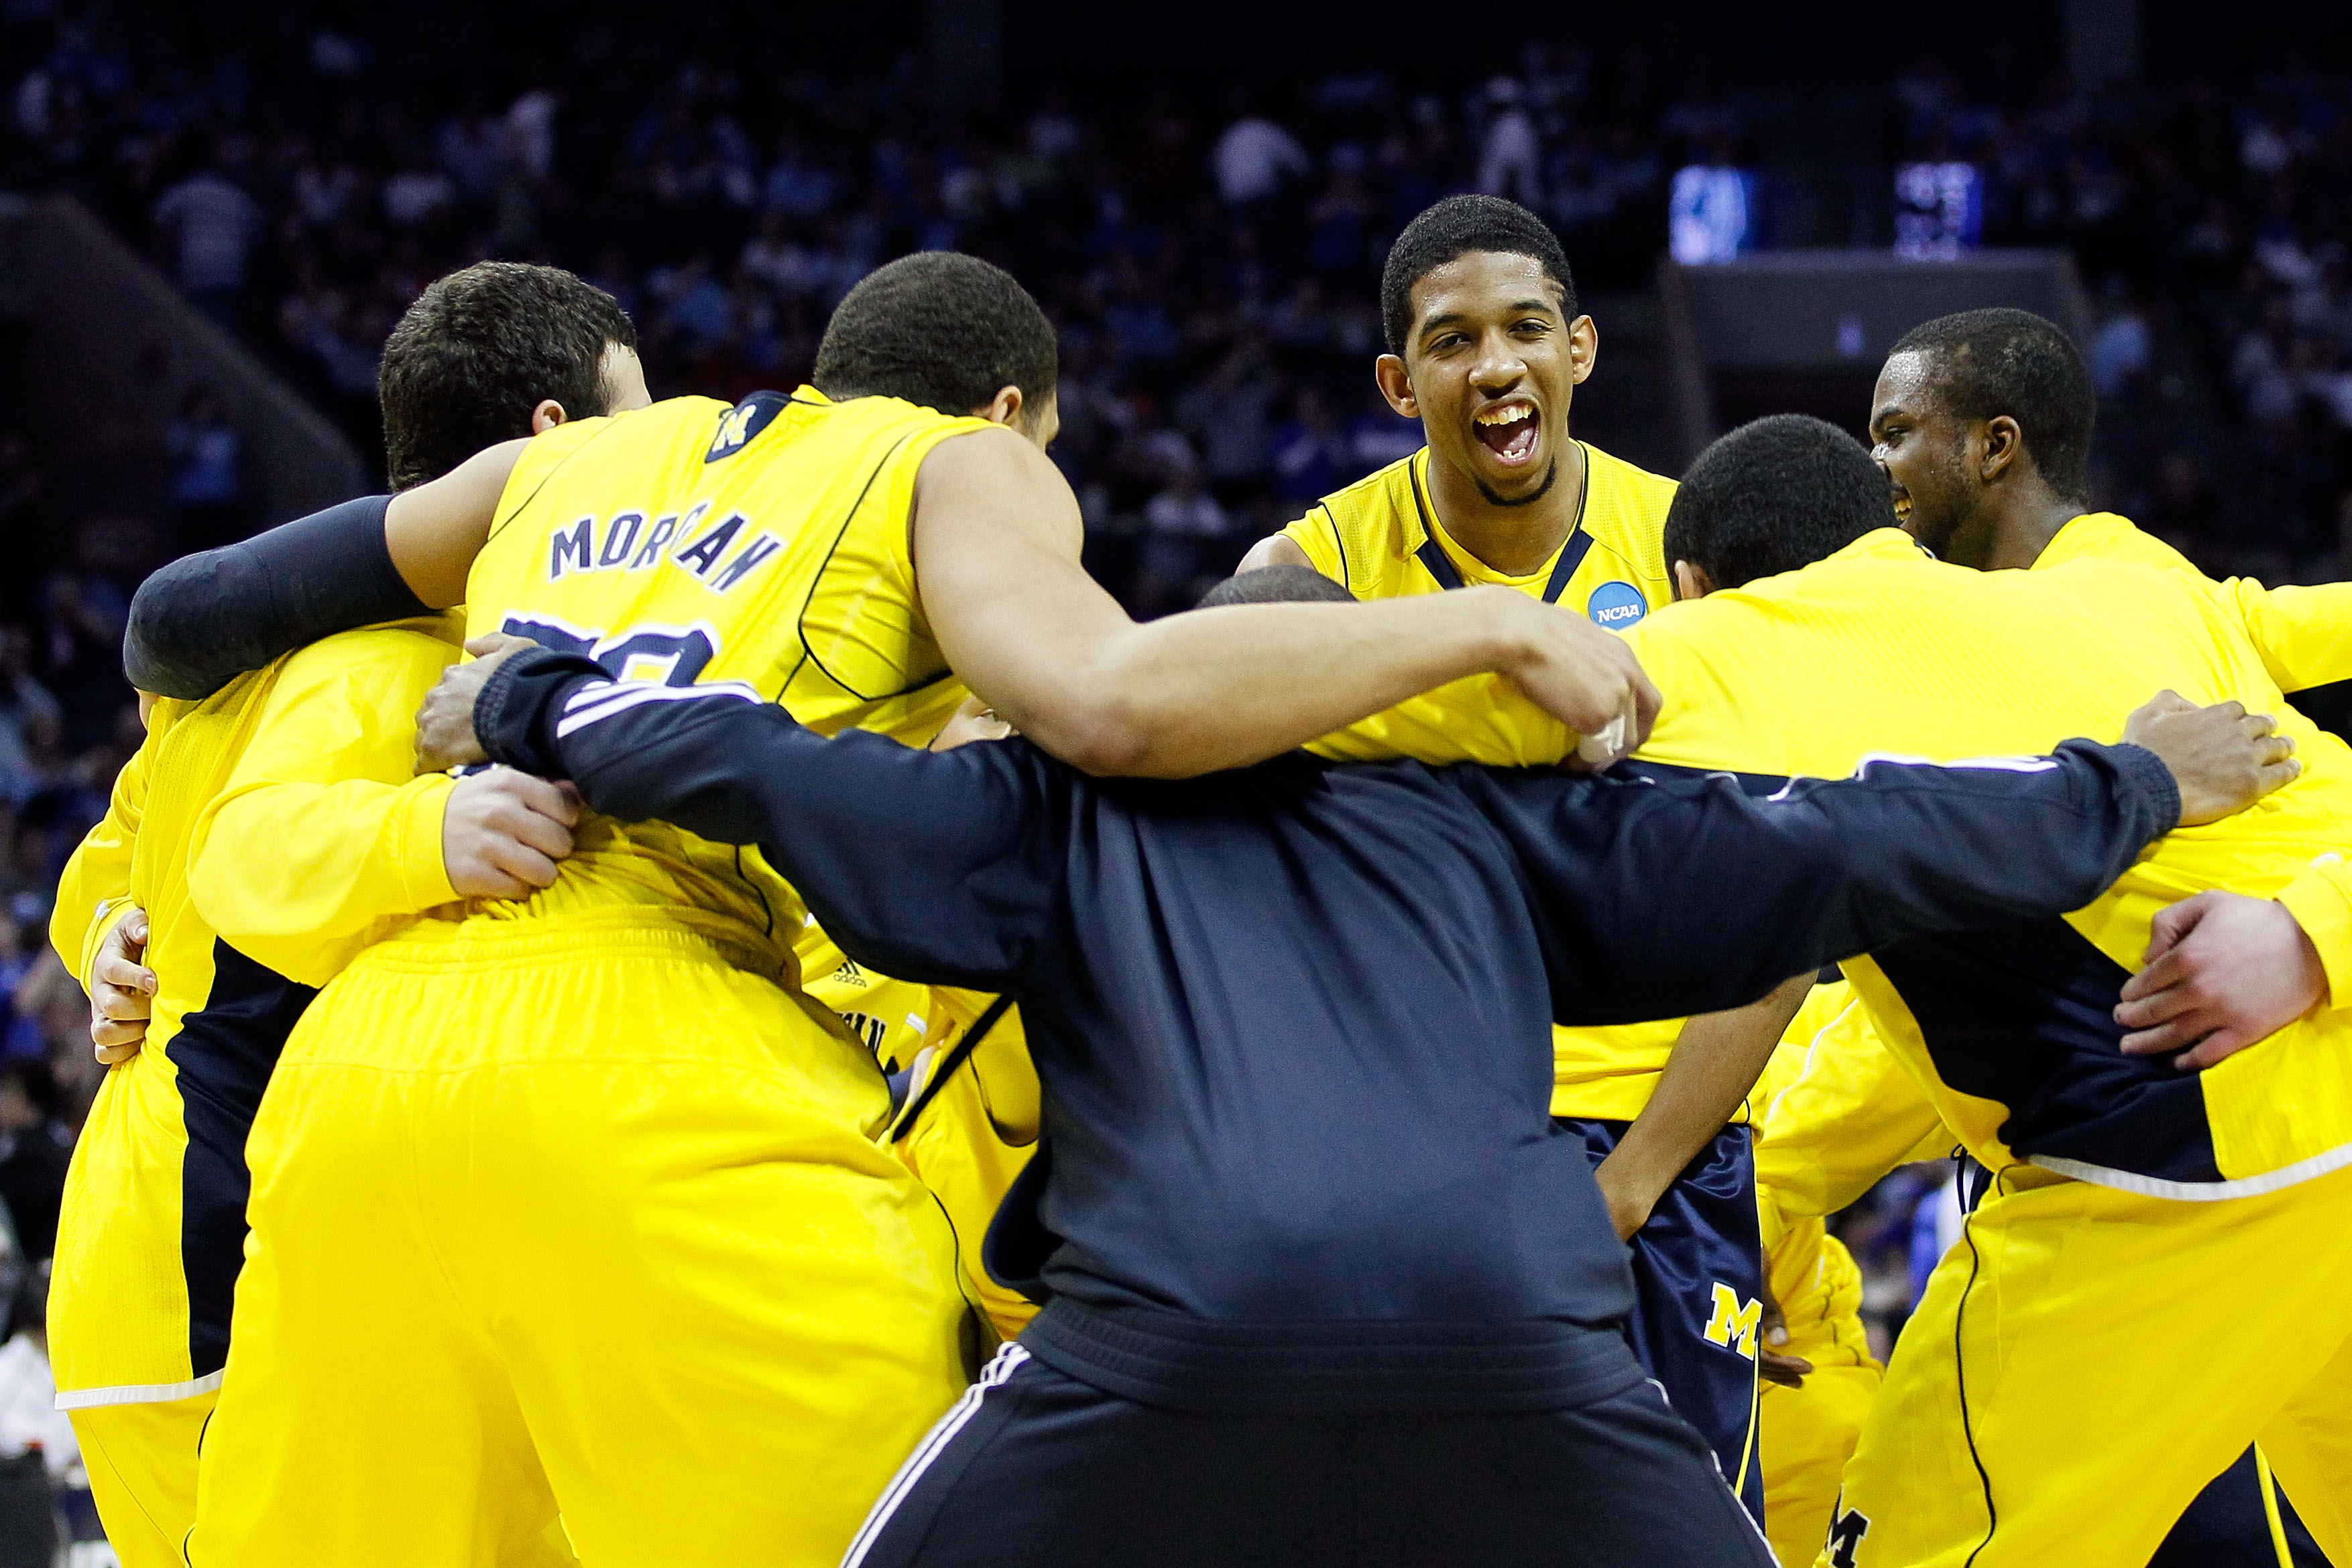 CHARLOTTE, NC - MARCH 20:  Darius Morris #4 of the Michigan Wolverines smiles as the Wolverines huddle before taking on the Duke Blue Devils during the third round of the 2011 NCAA men's basketball tournament at Time Warner Cable Arena on March 20, 2011 i